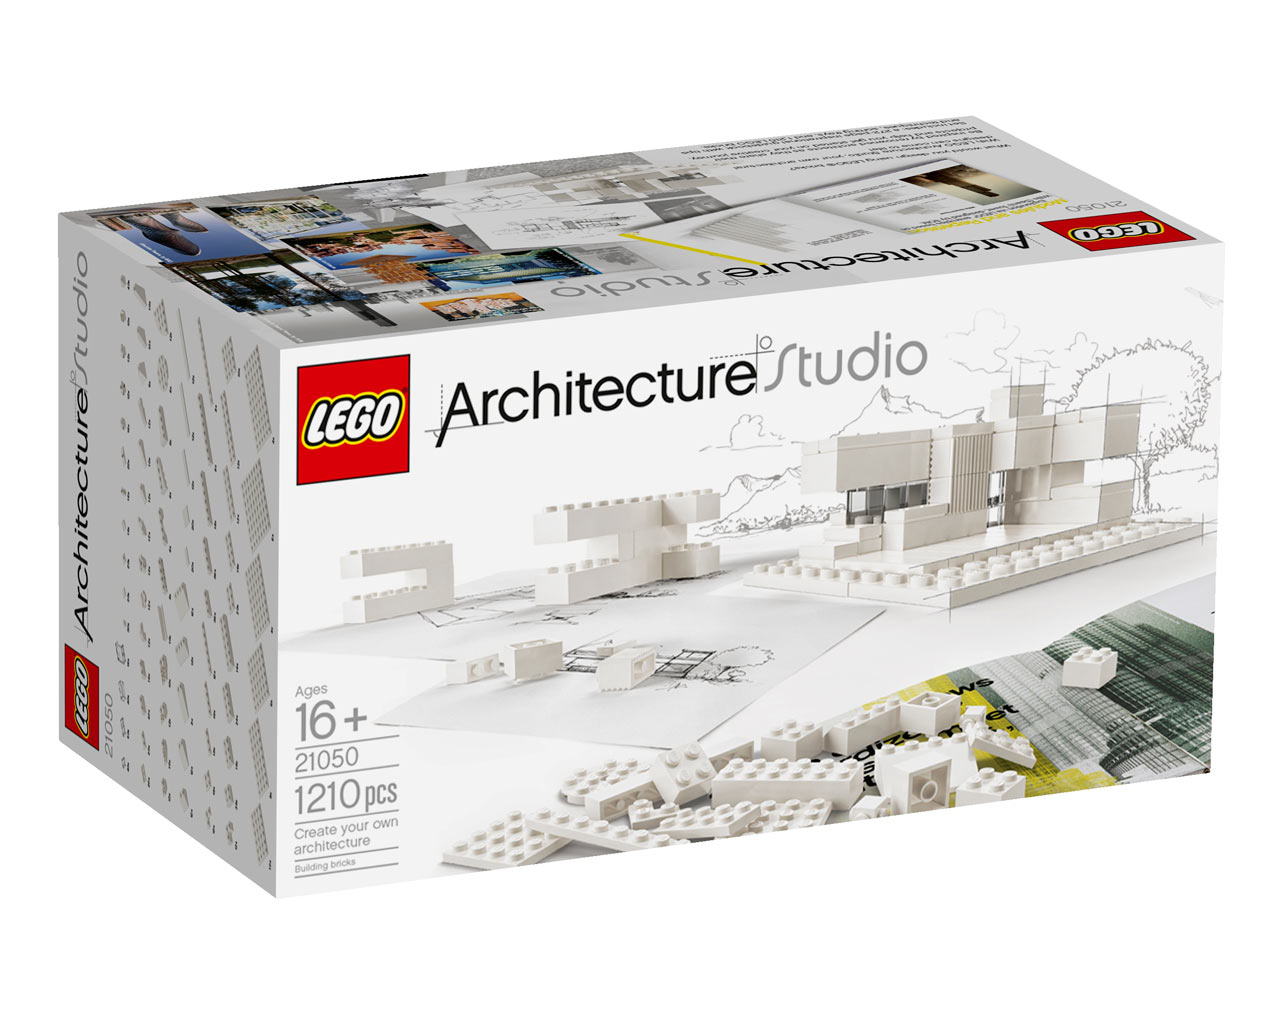 marlite friday feature win a lego architecture studio. Black Bedroom Furniture Sets. Home Design Ideas